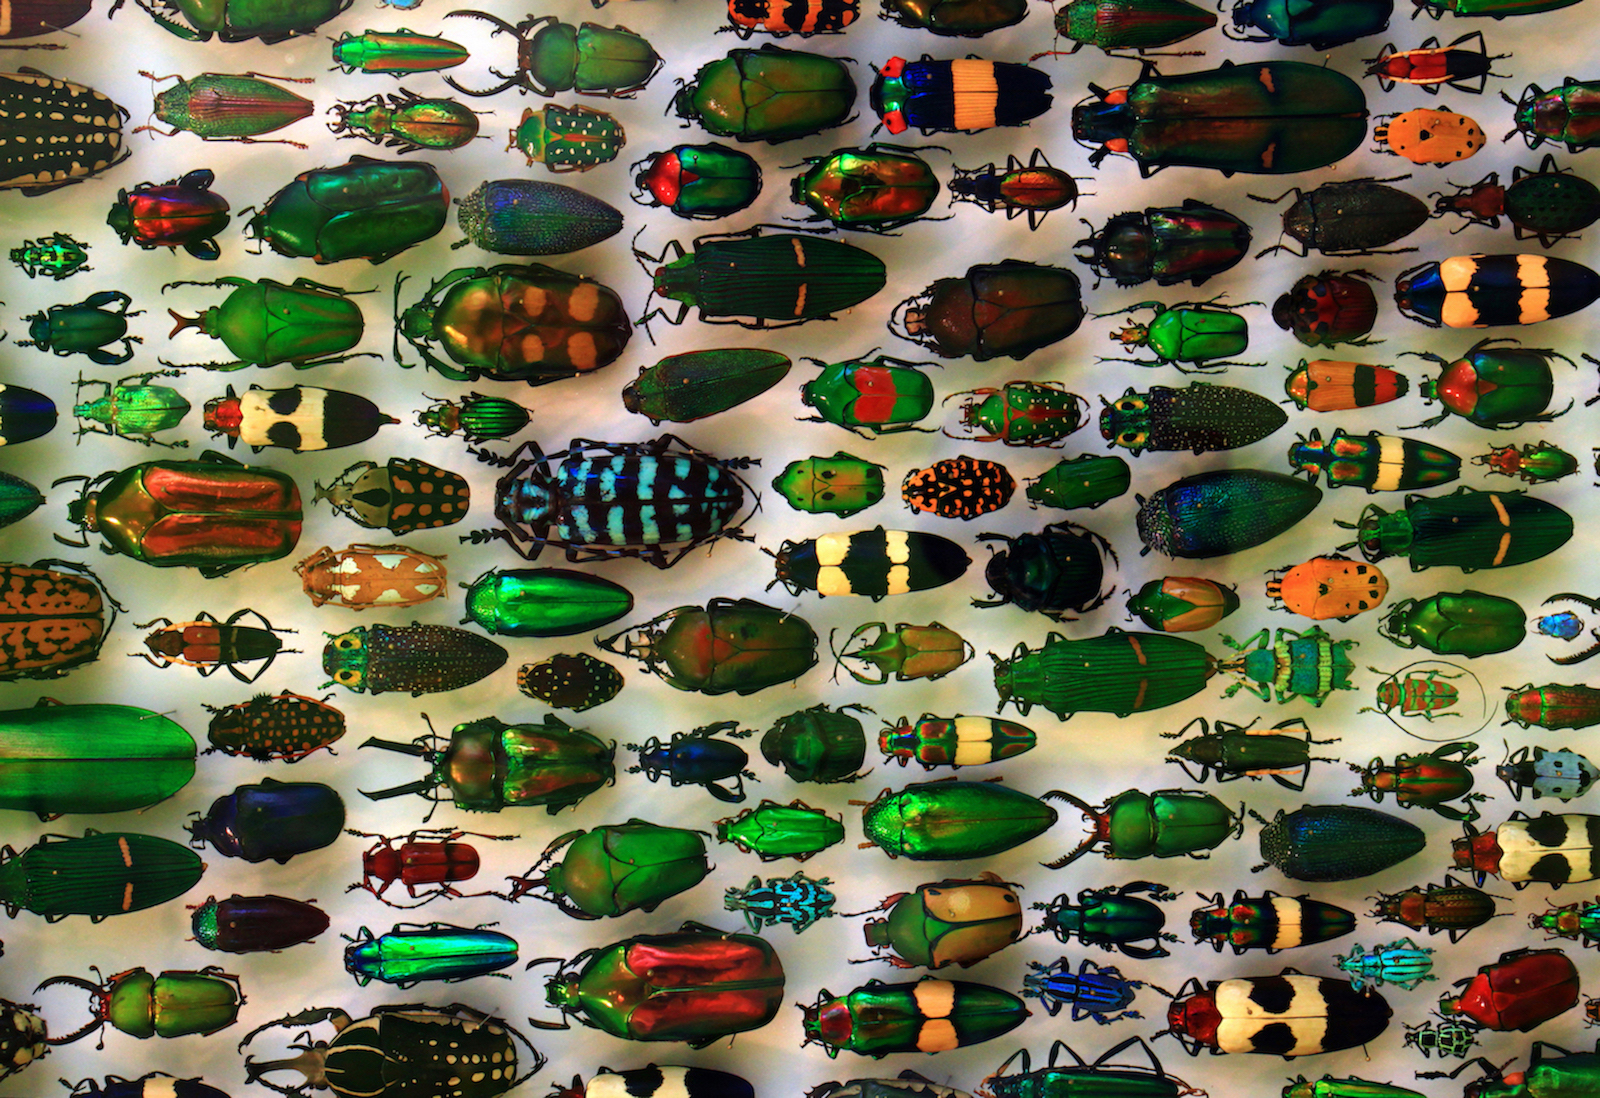 Why So Many Different Kinds of Beetles?